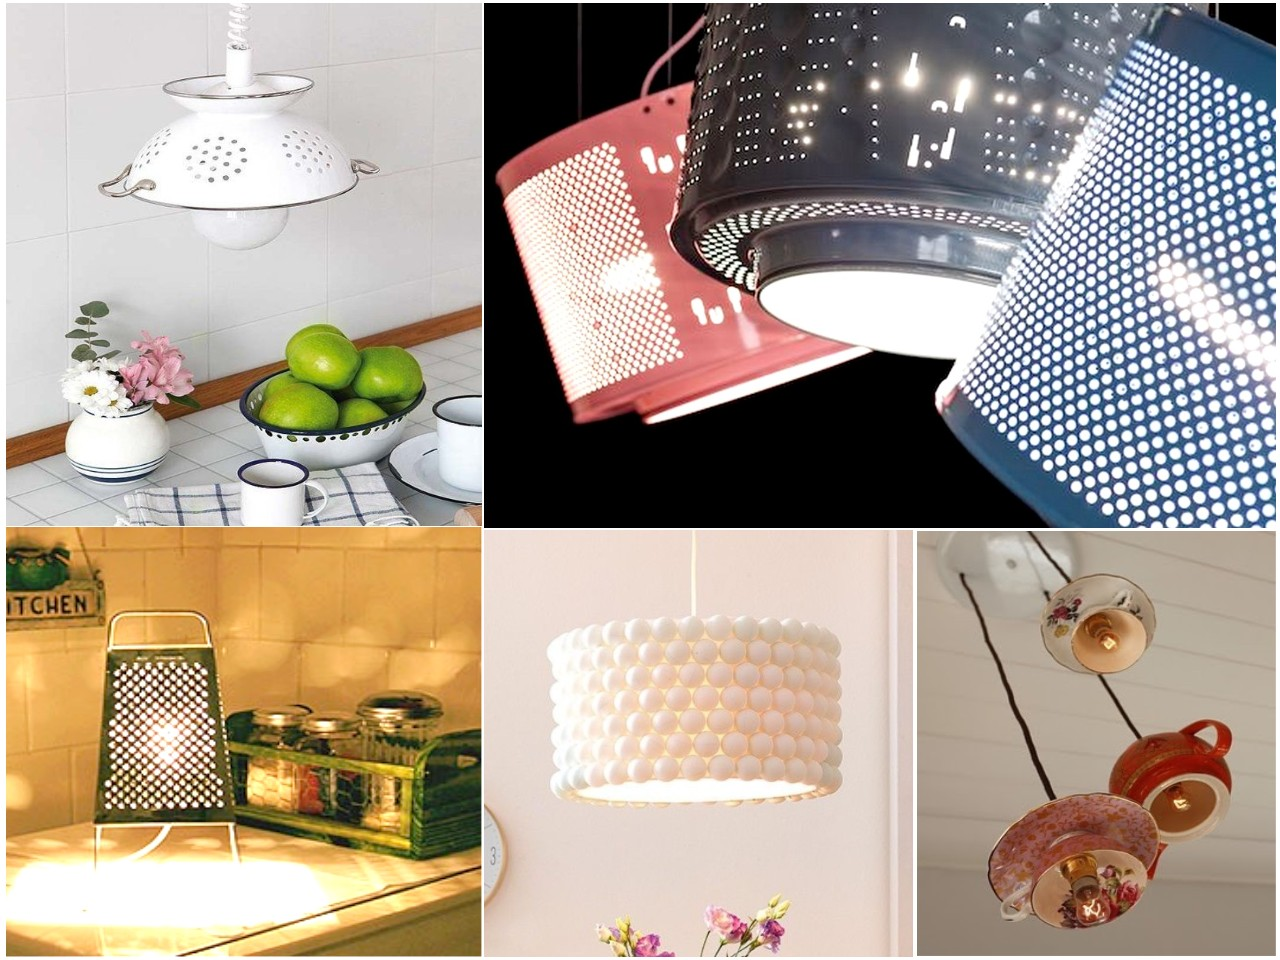 Como Hacer Lamparas Decorativas 10 Ideas Originales De Reciclar Para Decorar Con Lámparas